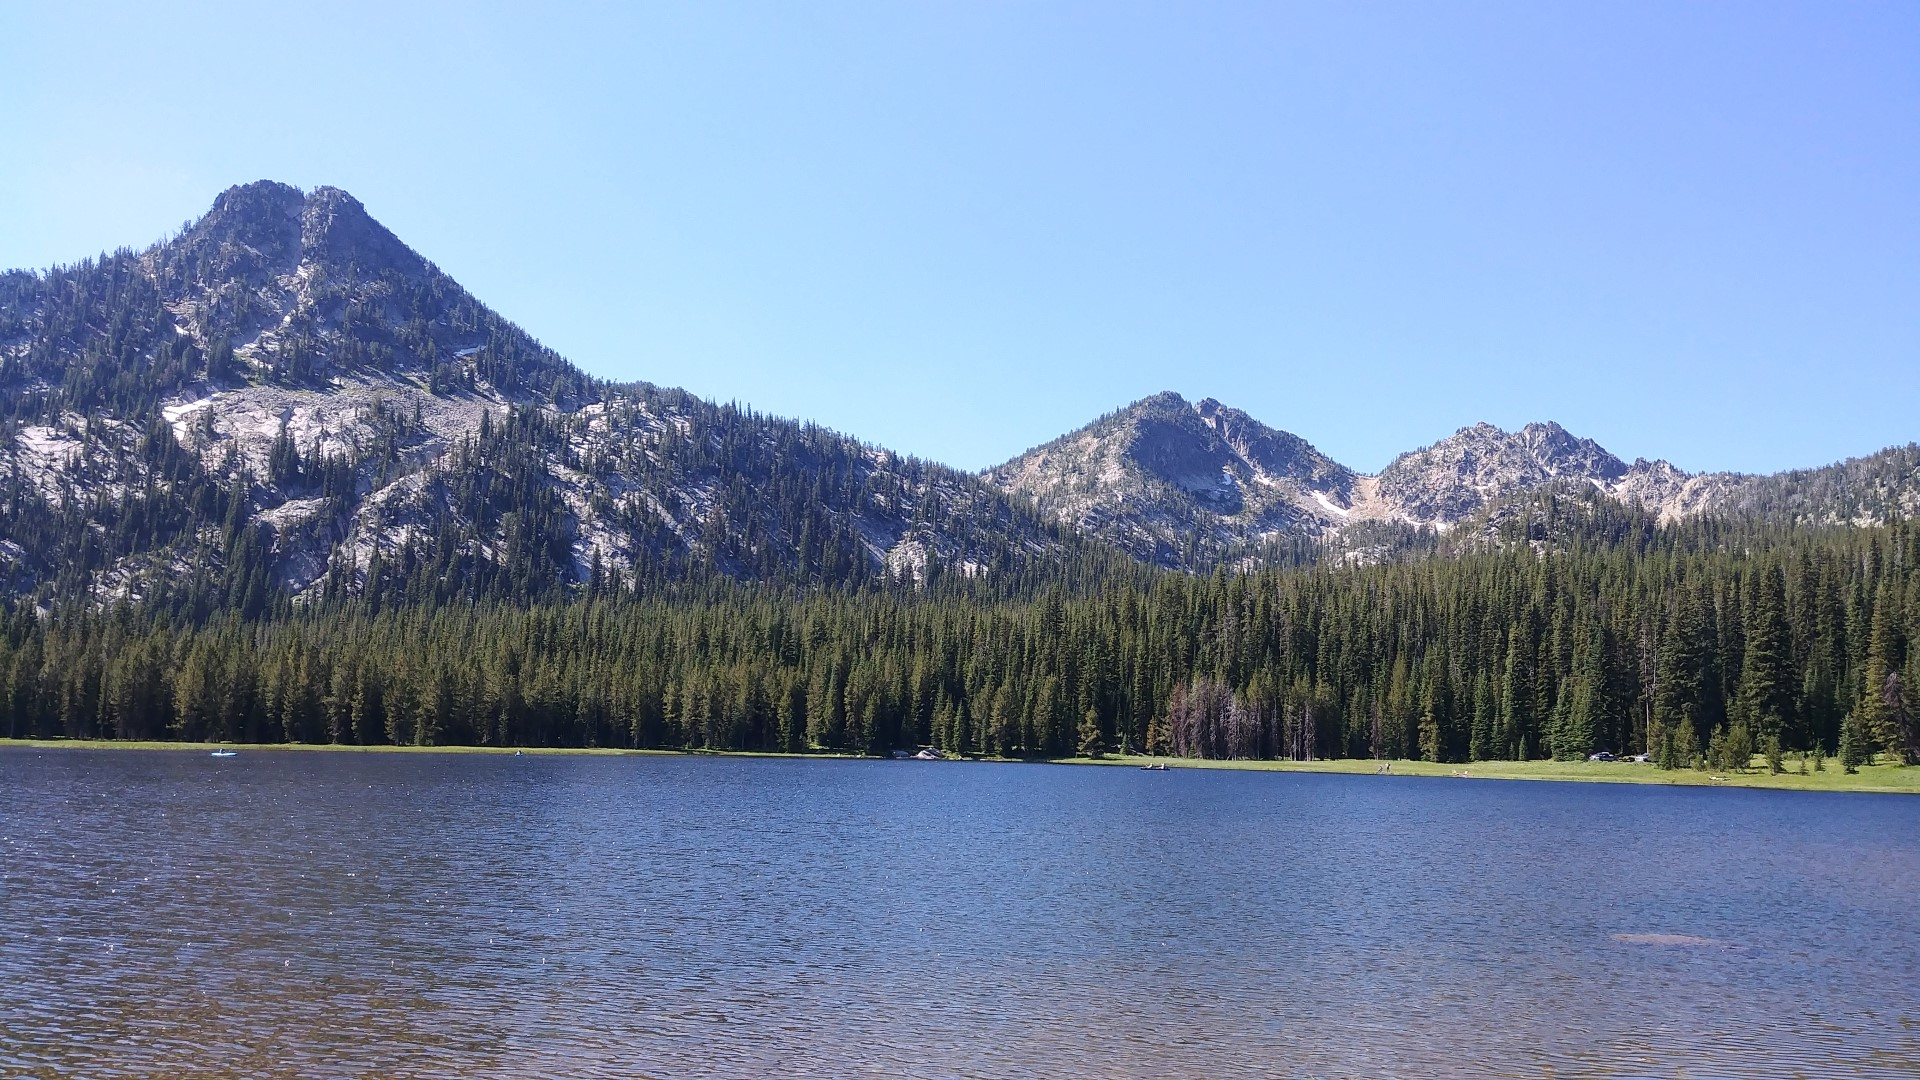 Anthony lakes wolf creek reservoir updates for Peak fishing times for today